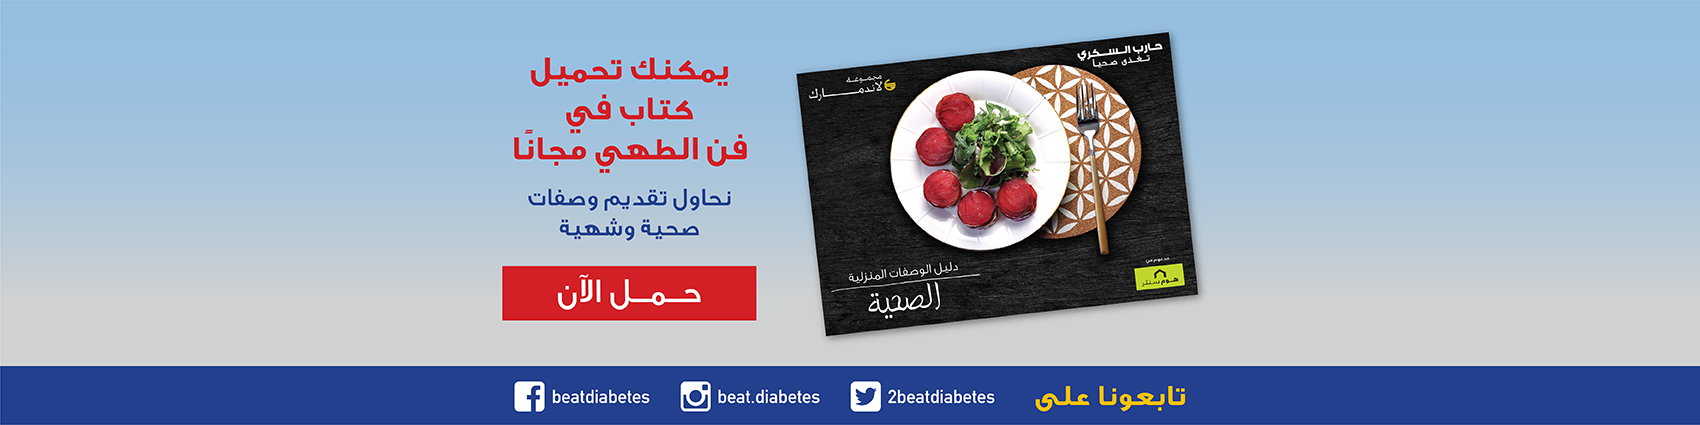 public://Free Cookbook_Arabic.jpg